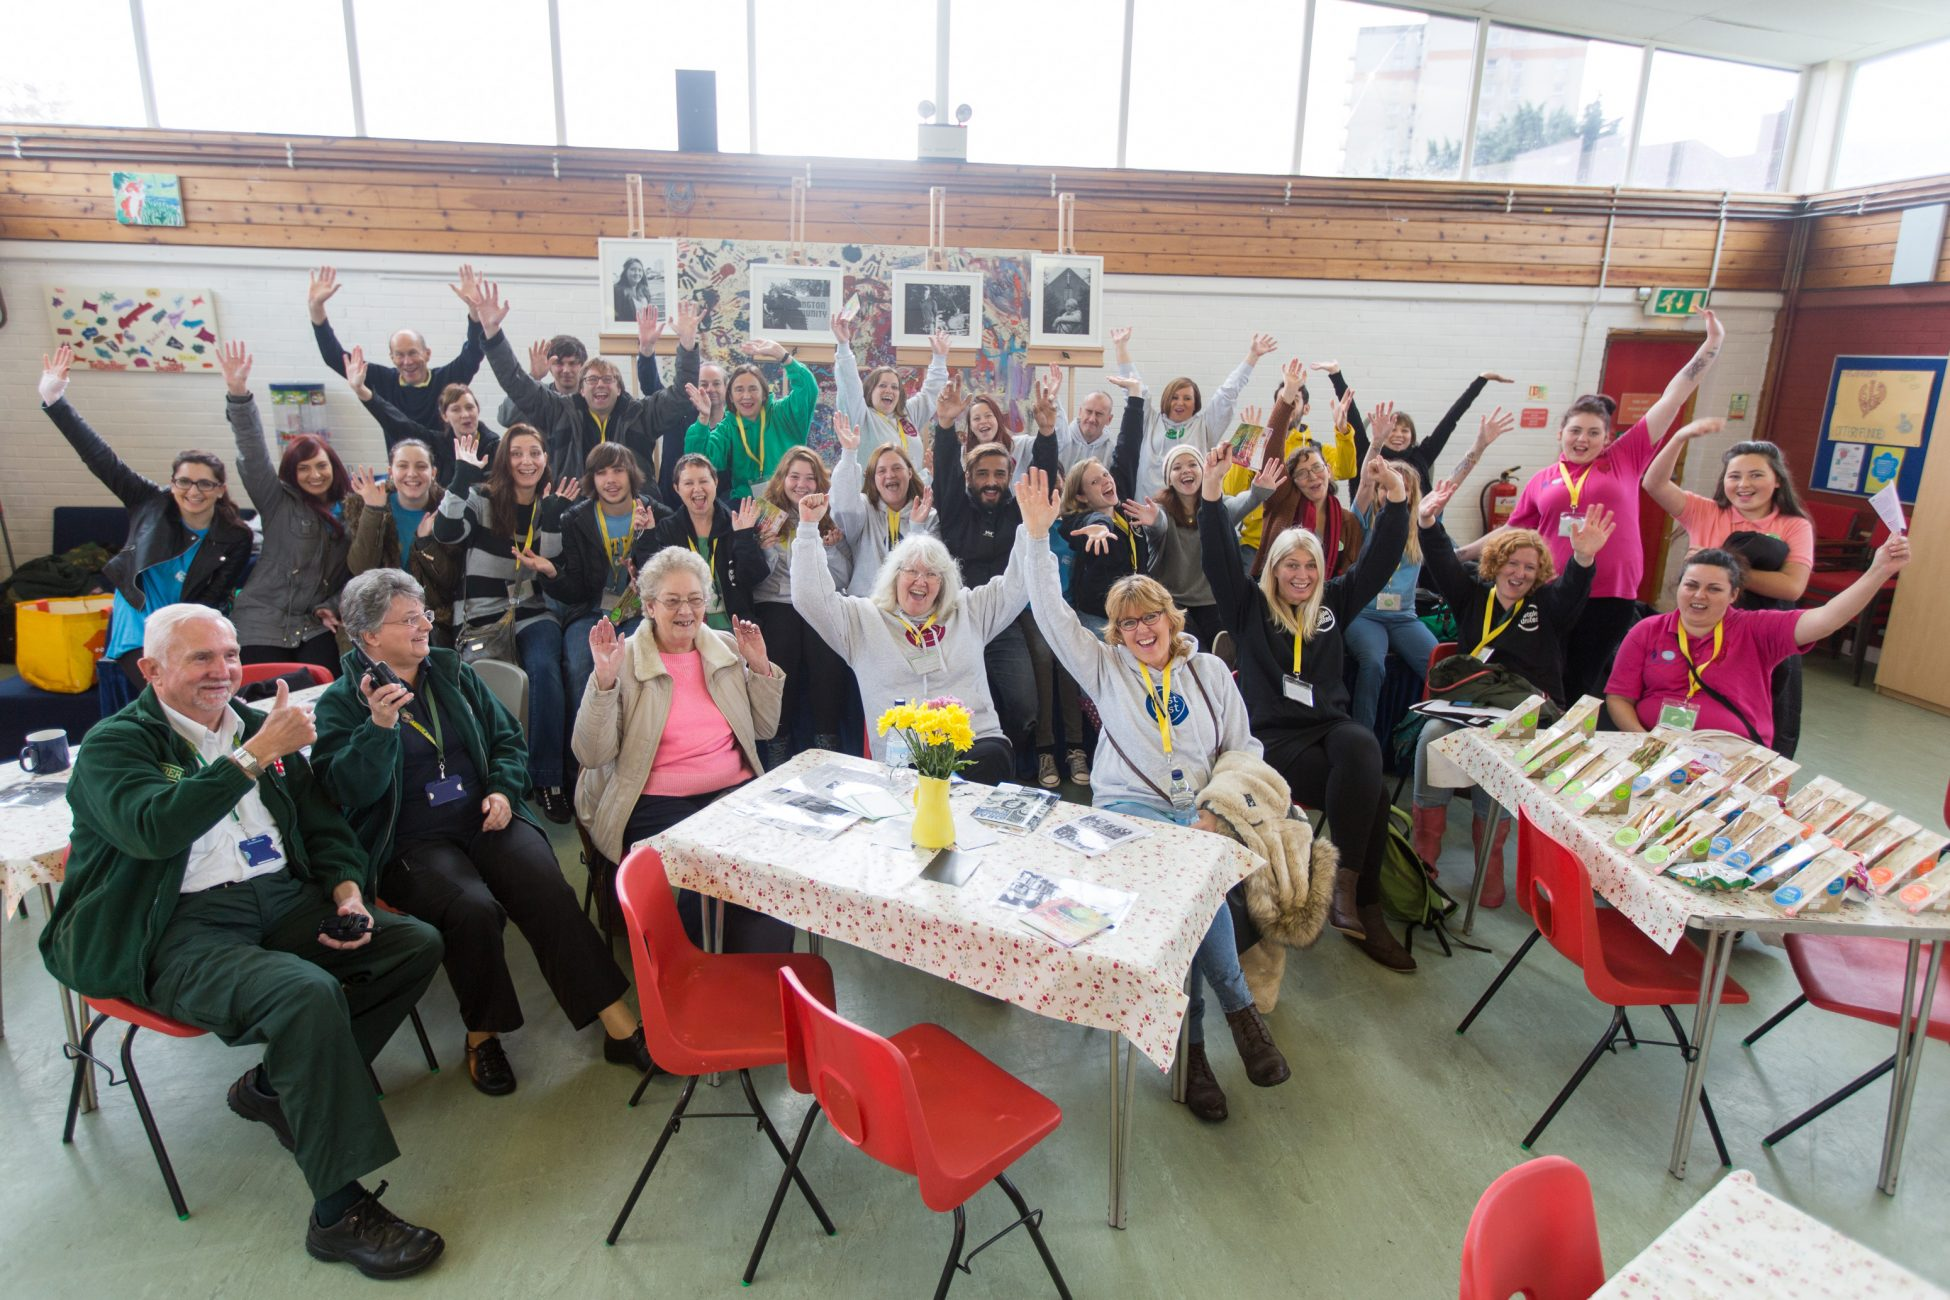 Photo of a group of about 30 people in a hall or community centre with various tables and chairs with flowers and sandwiches on them. The people are all facing the camera and cheering with his arms in the air.